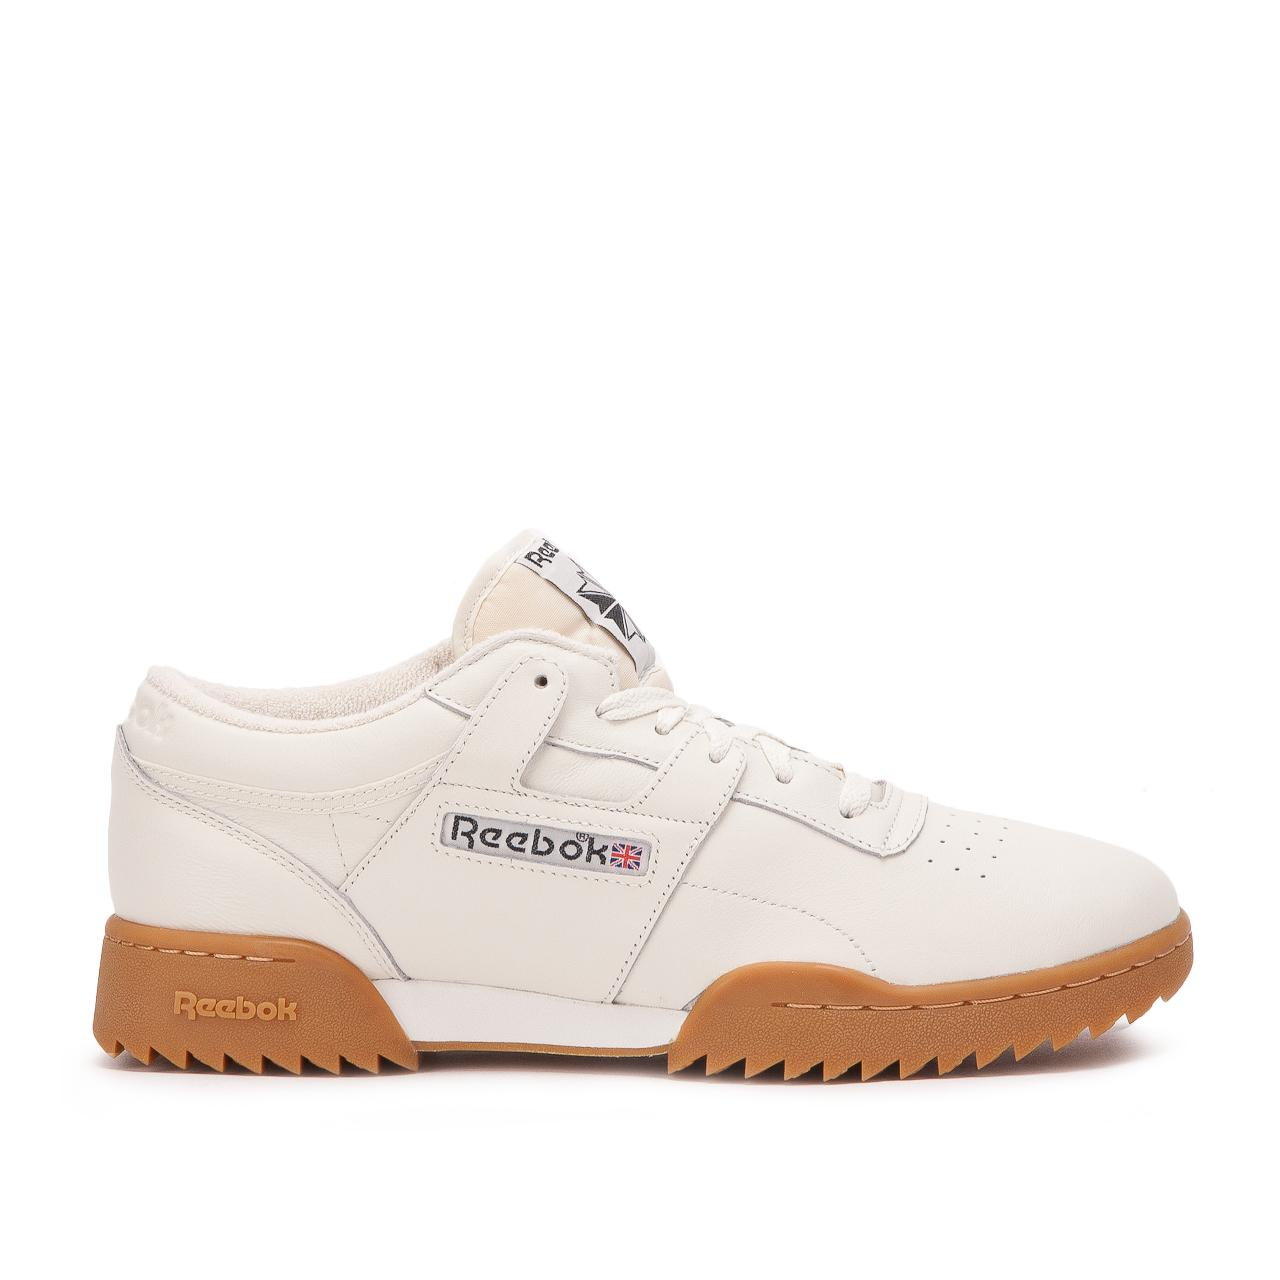 Reebok Workout Clean Ripple Vintage in White for Men - Save ... b2fea5757